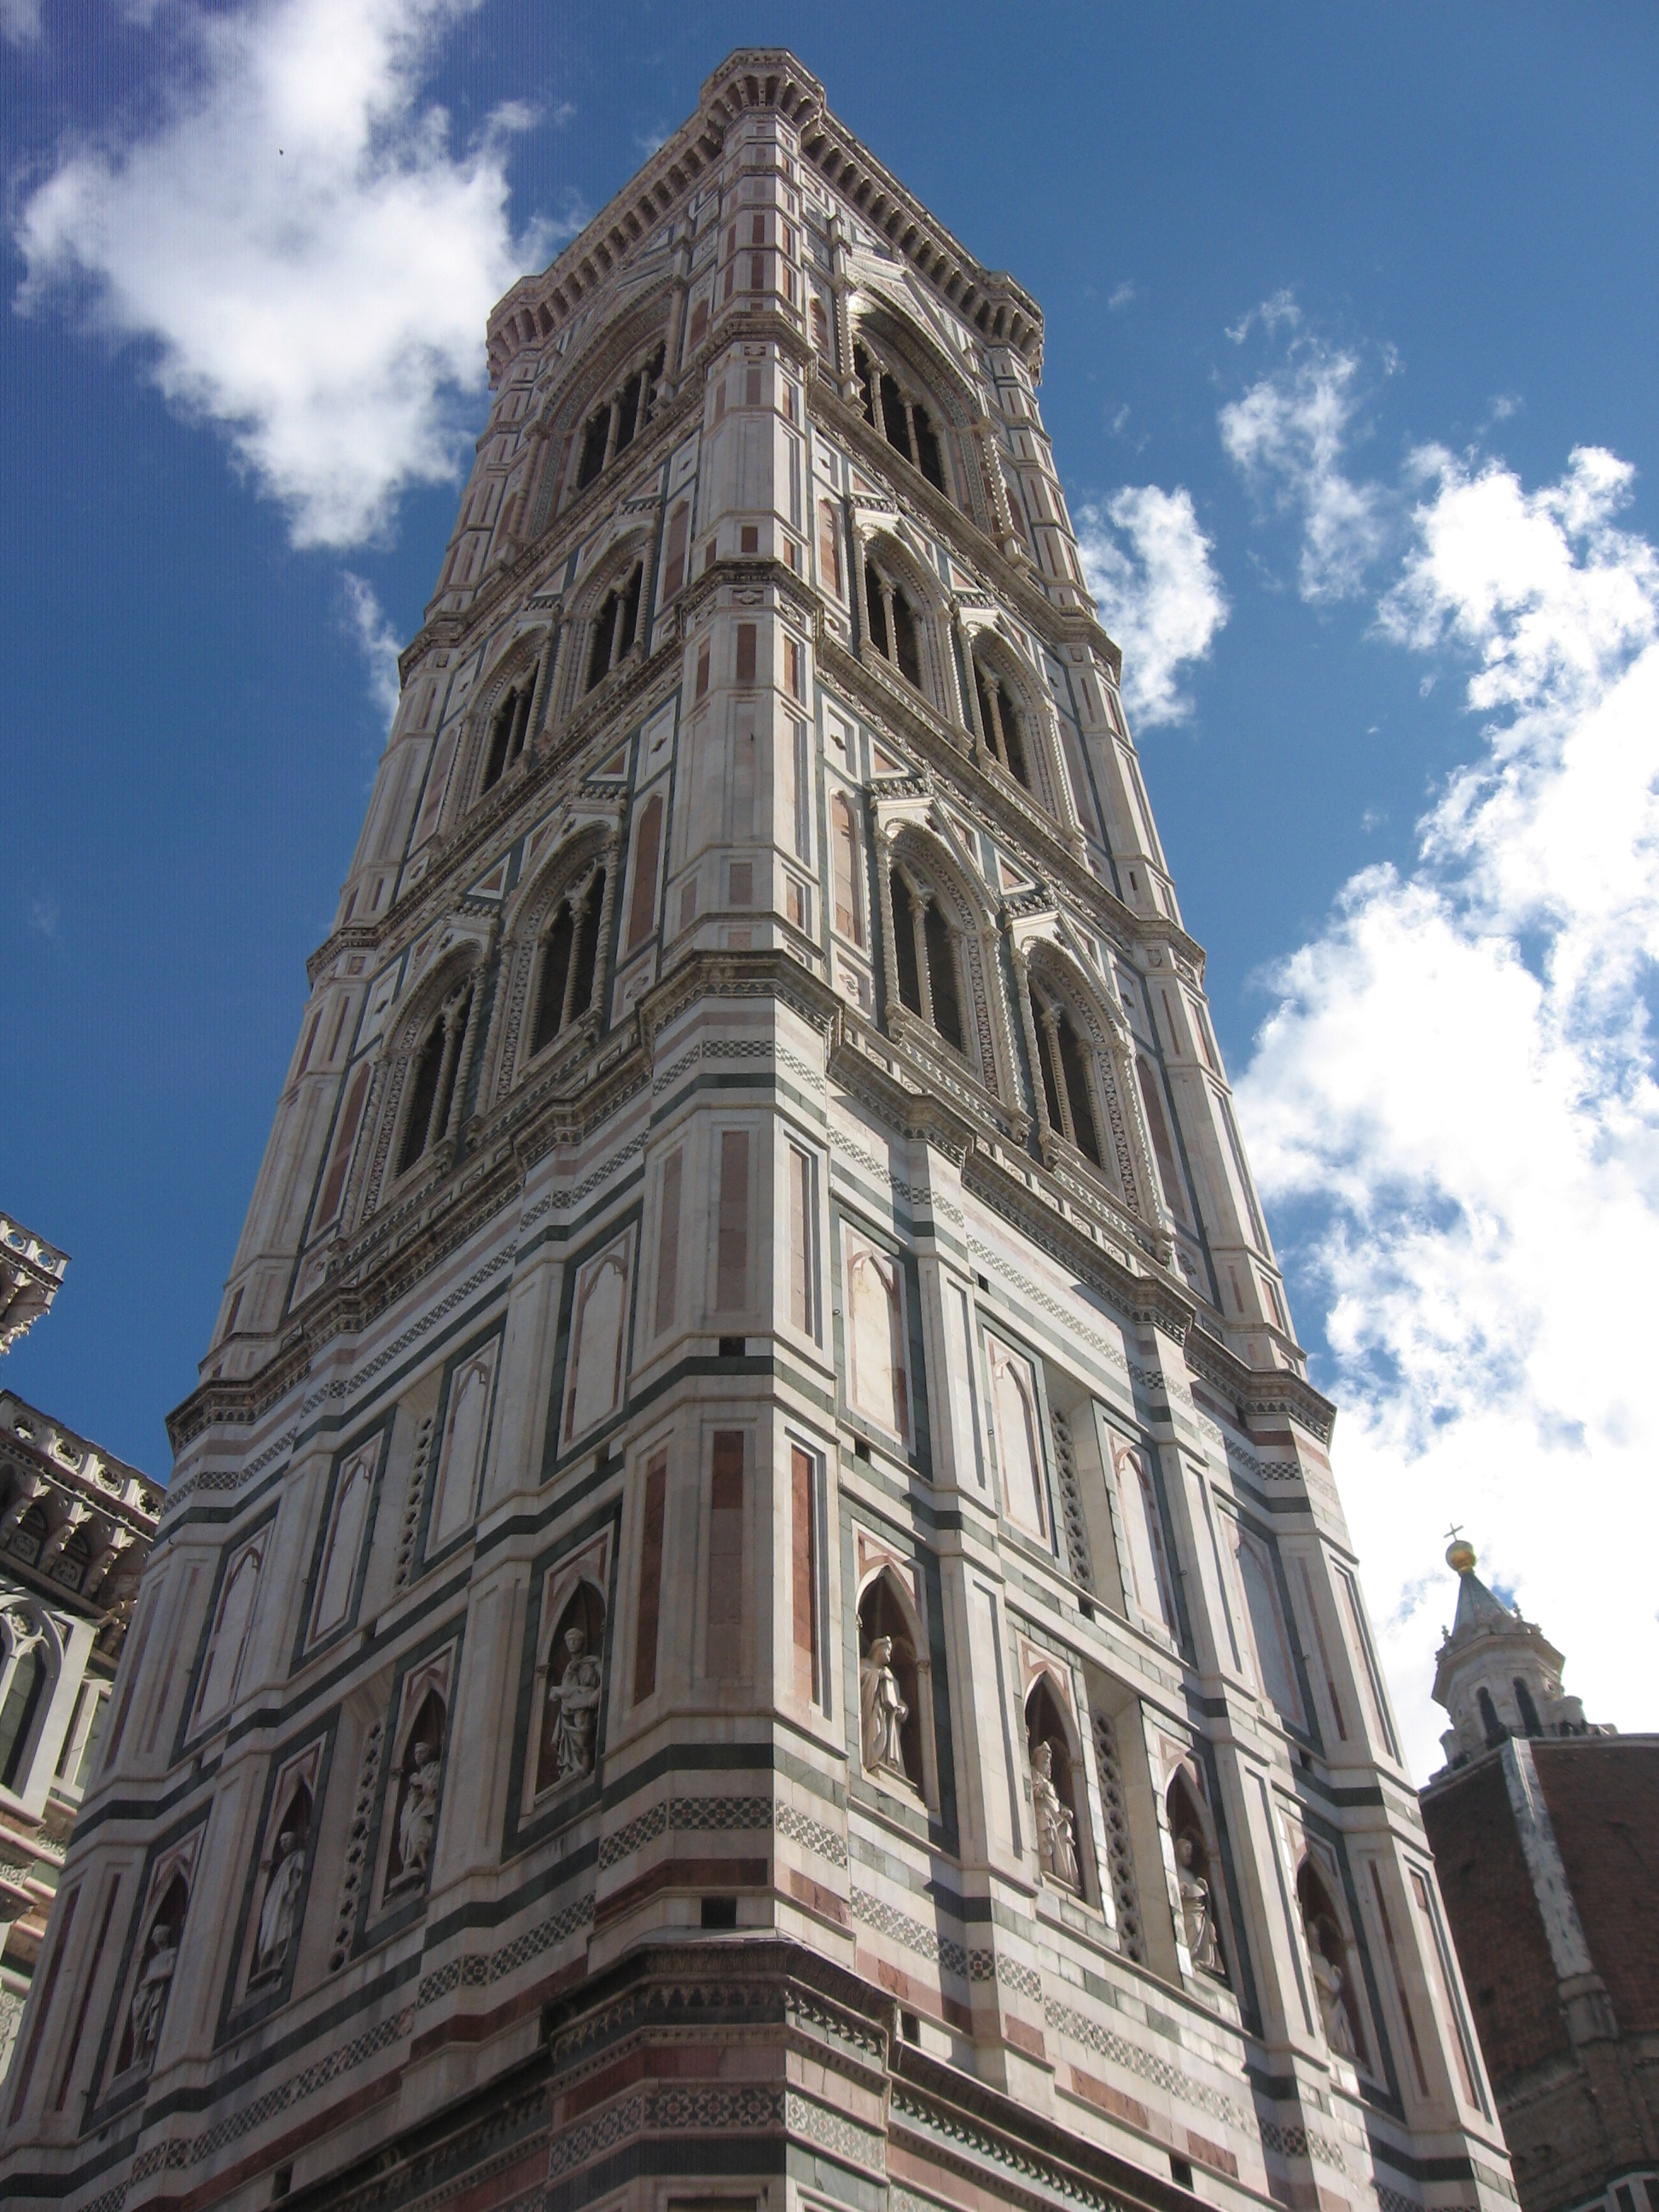 Italie Rome Florence 14 129